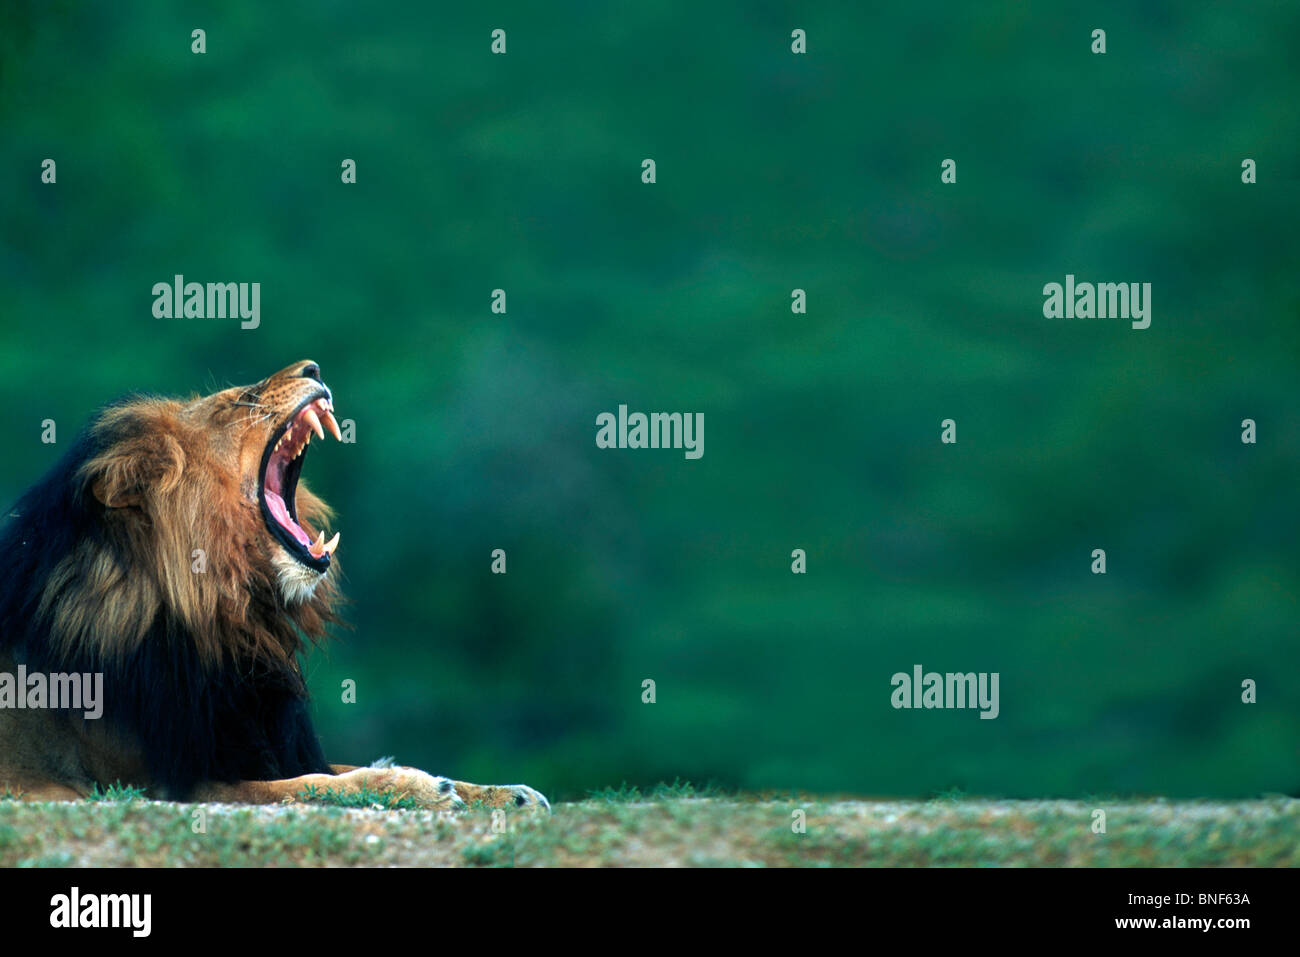 Vue d'un lion (Panthera leo) portant sur le terrain, Kruger National Park, la province de Mpumalanga, Afrique Photo Stock